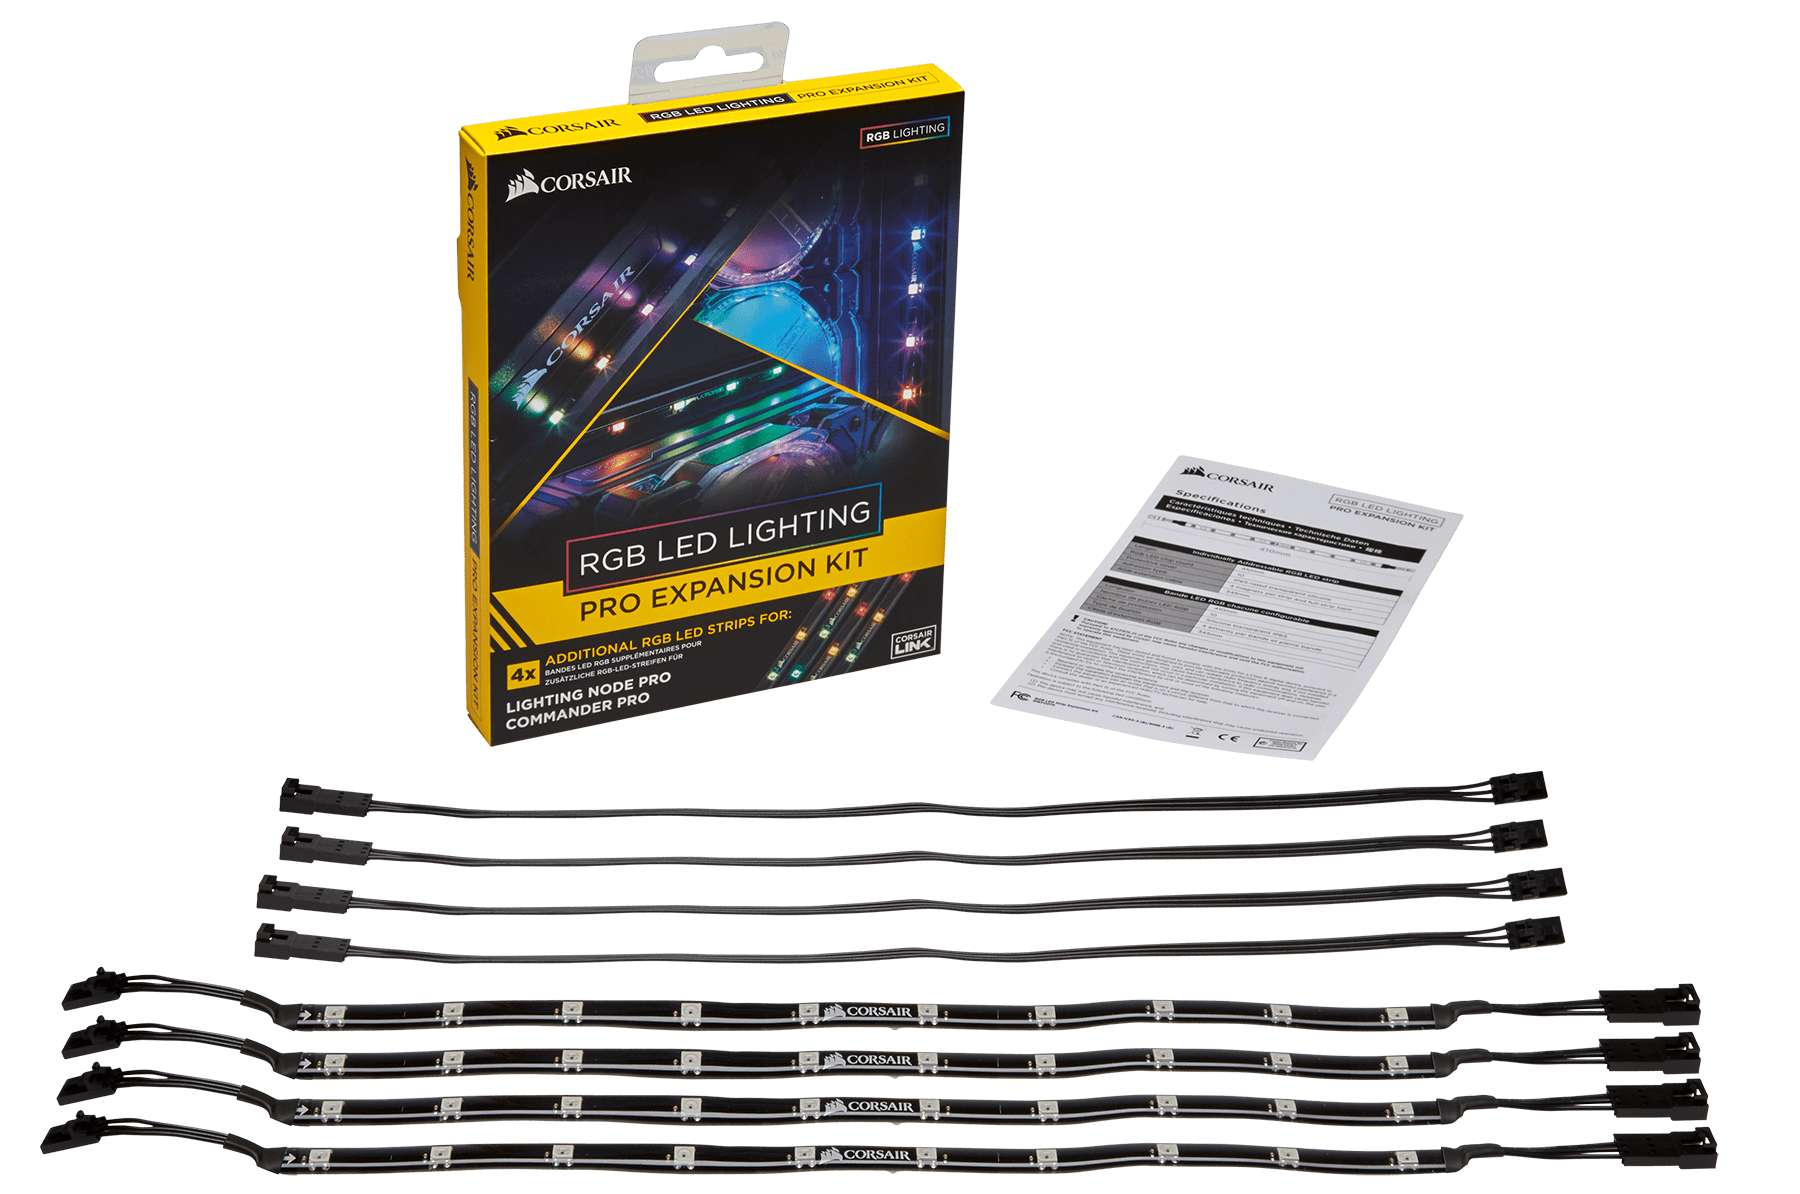 Led Leuchtbänder Corsair Rgb Led Lighting Pro Expansion Kit